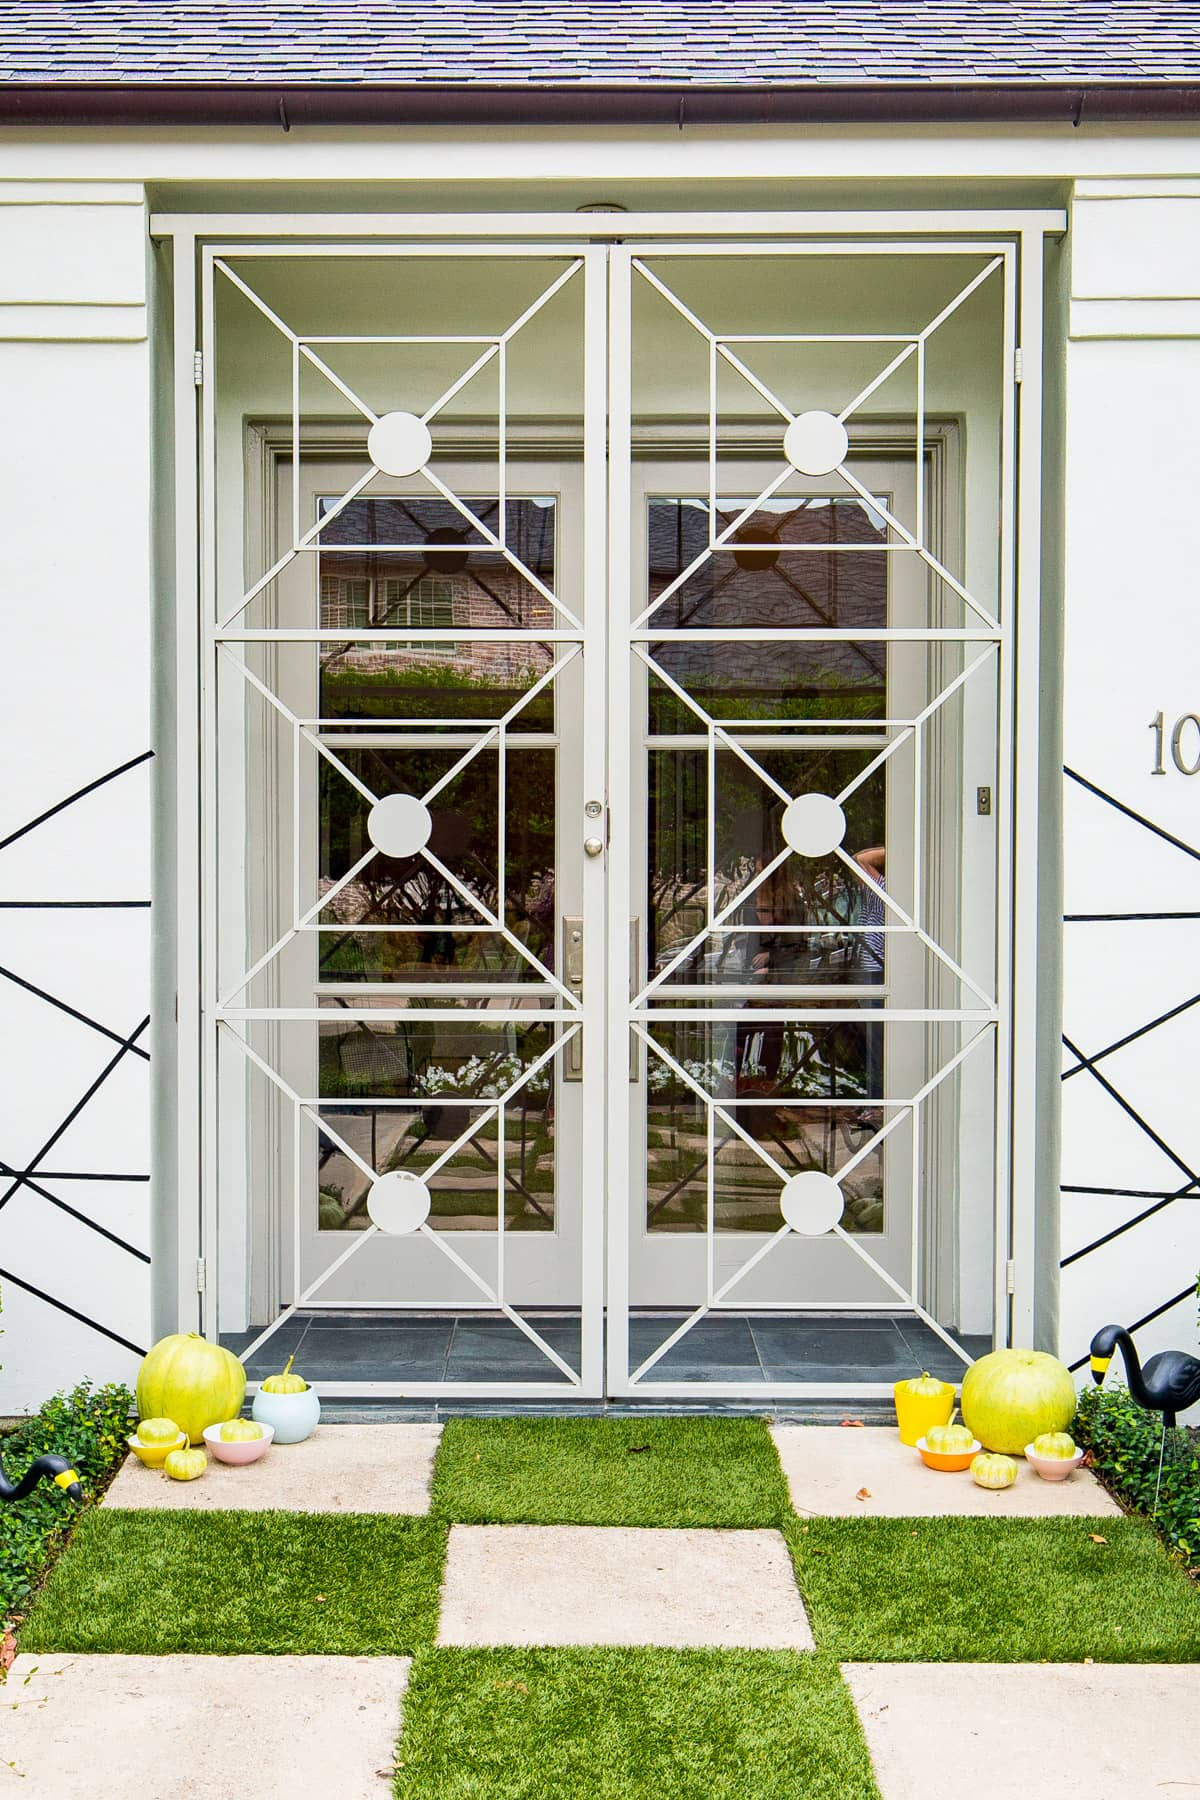 mid century metal doors and a checkered entrance! - Palm Springs Inspired Halloween Entryway Decor & Product Round Up by top Houston lifestyle blogger Ashley Rose - #halloweendecor #halloween #decor #home #holidays #curbappeal #palmsprings #midcentury